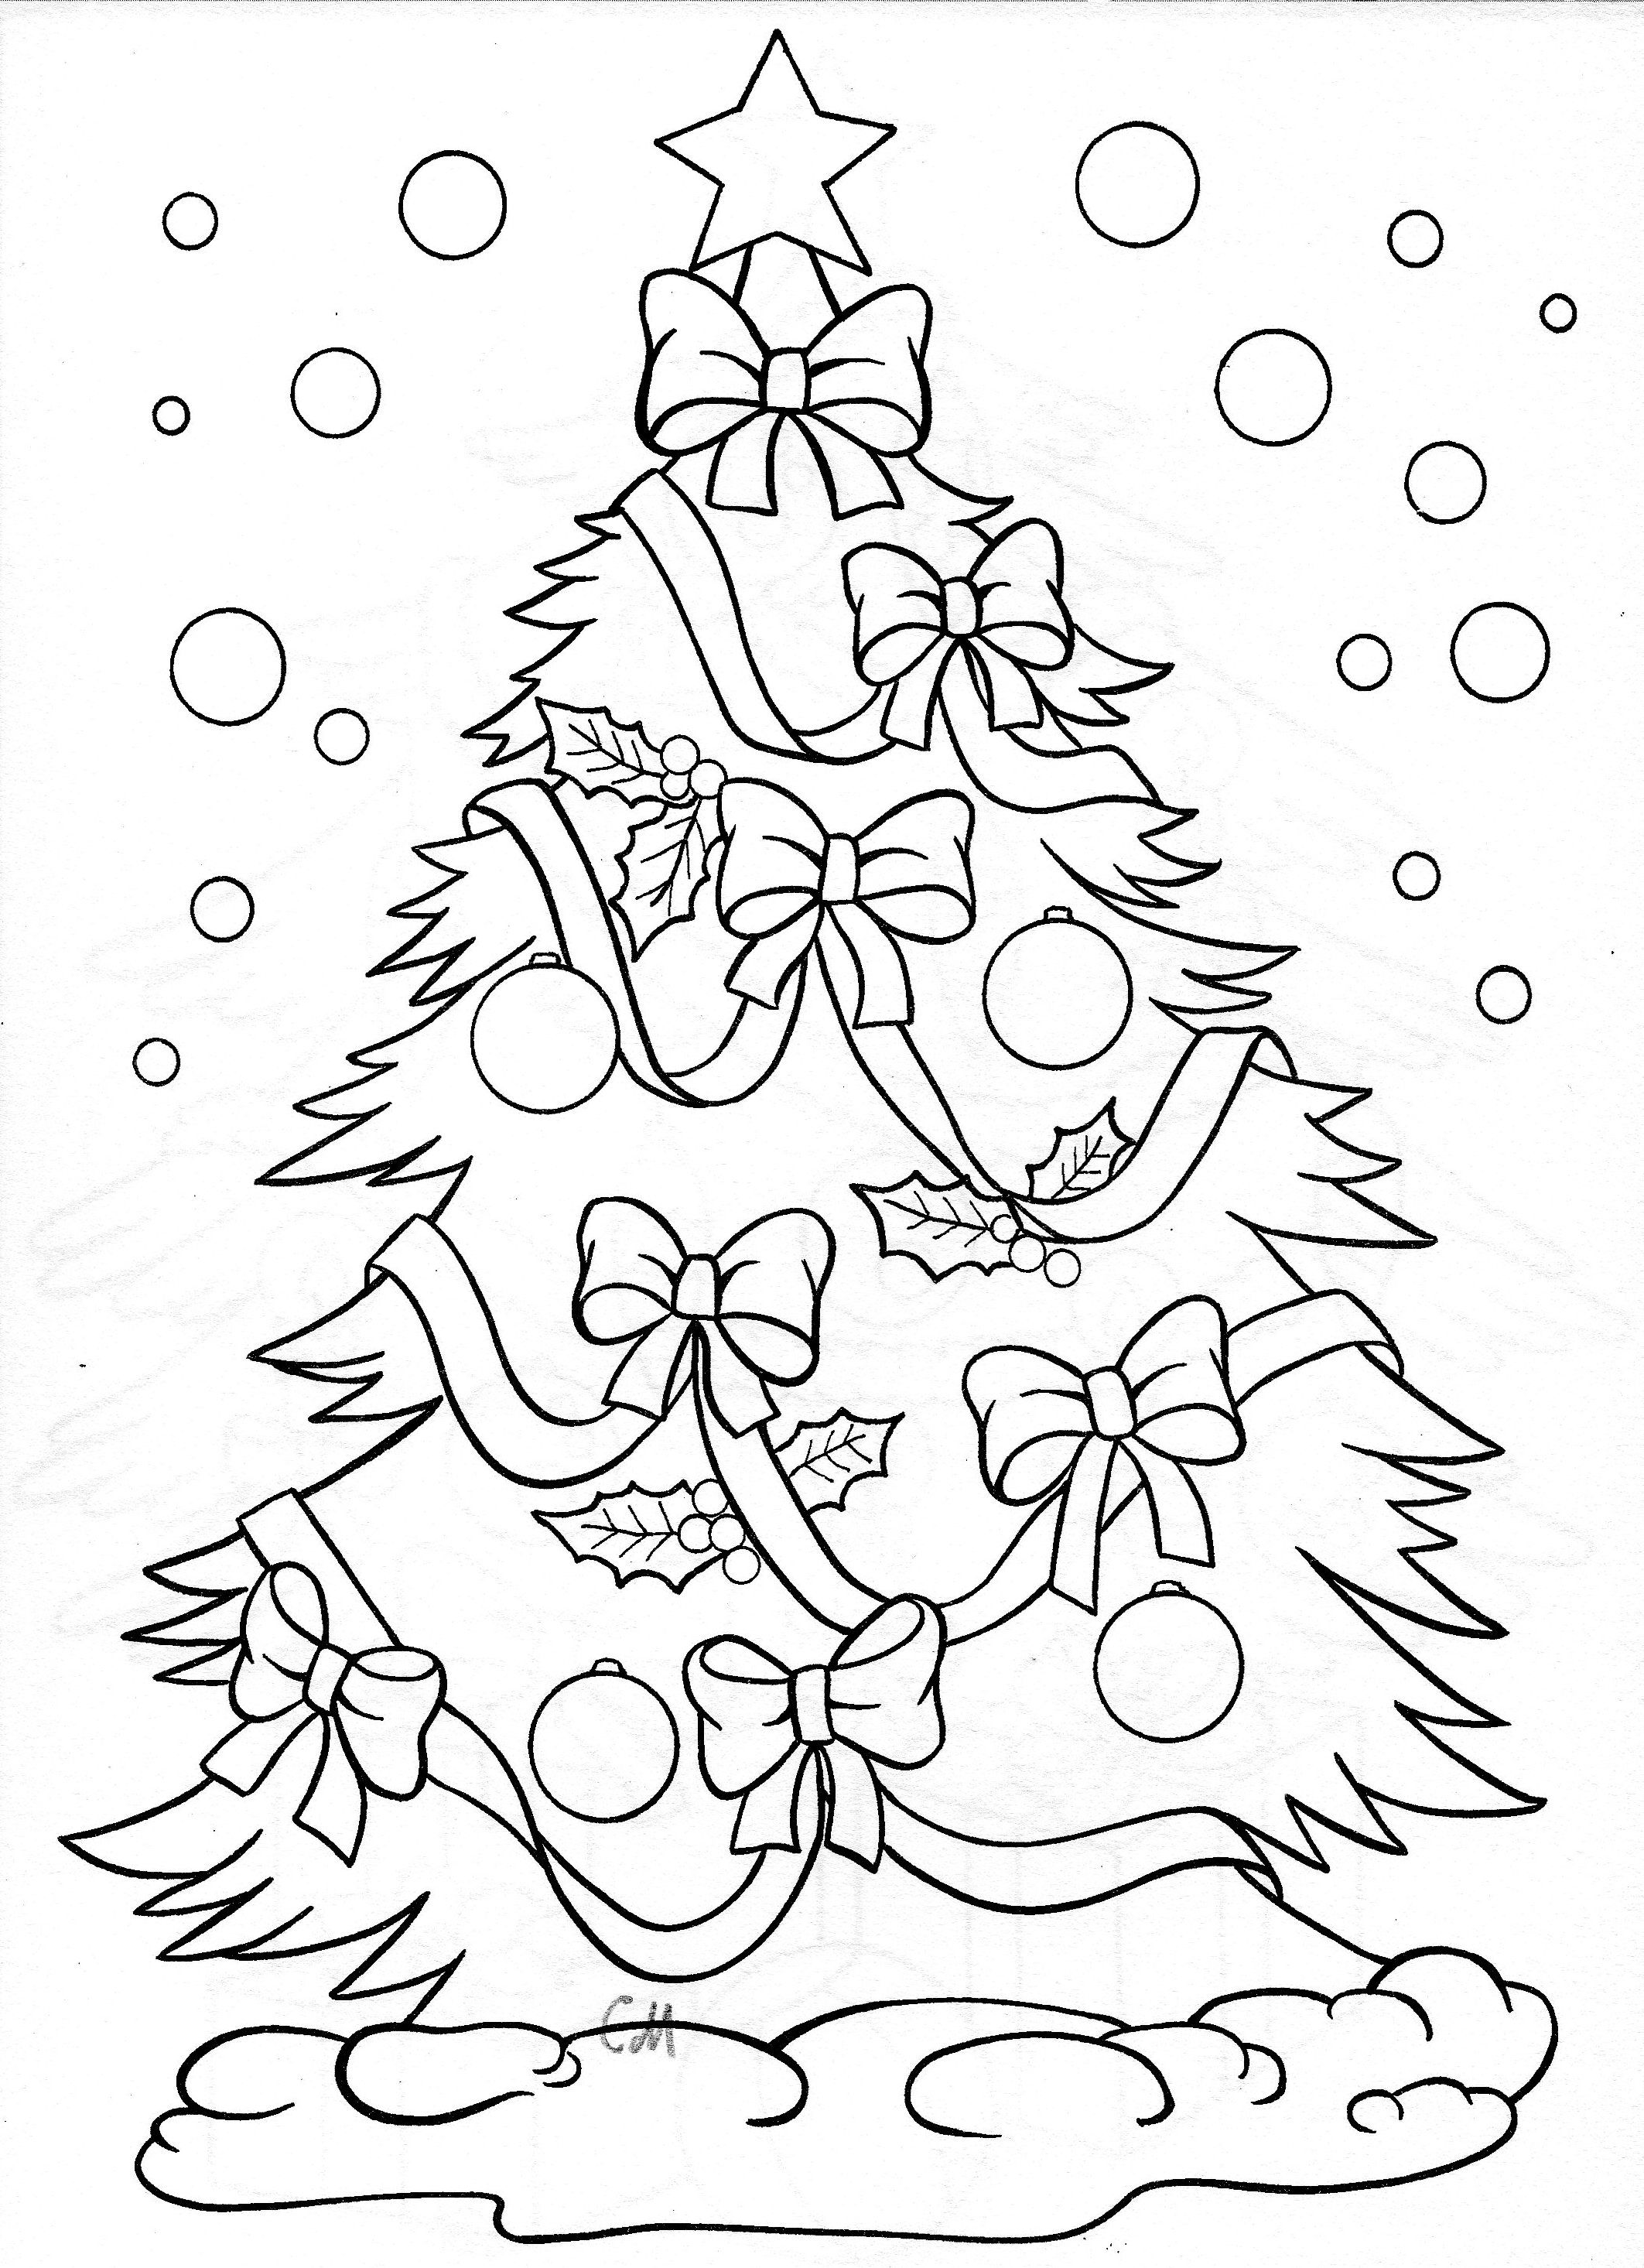 Nikolaus Ausmalbilder Vorlagen : Coloring For Adults Kleuren Voor Volwassenen Coloring Pages